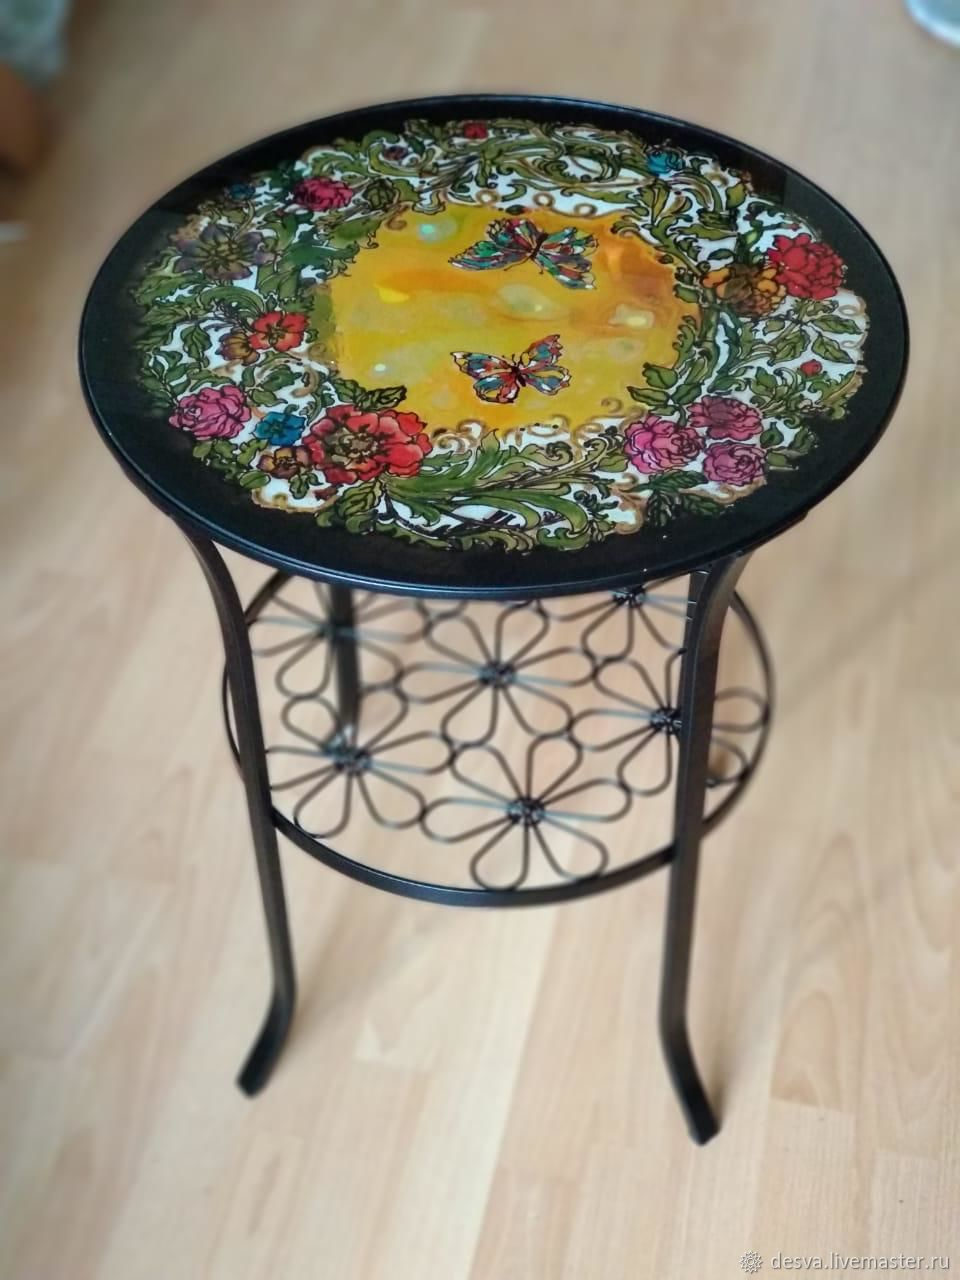 Coffee table with glass top ' garden of Eden', Tables, Moscow,  Фото №1